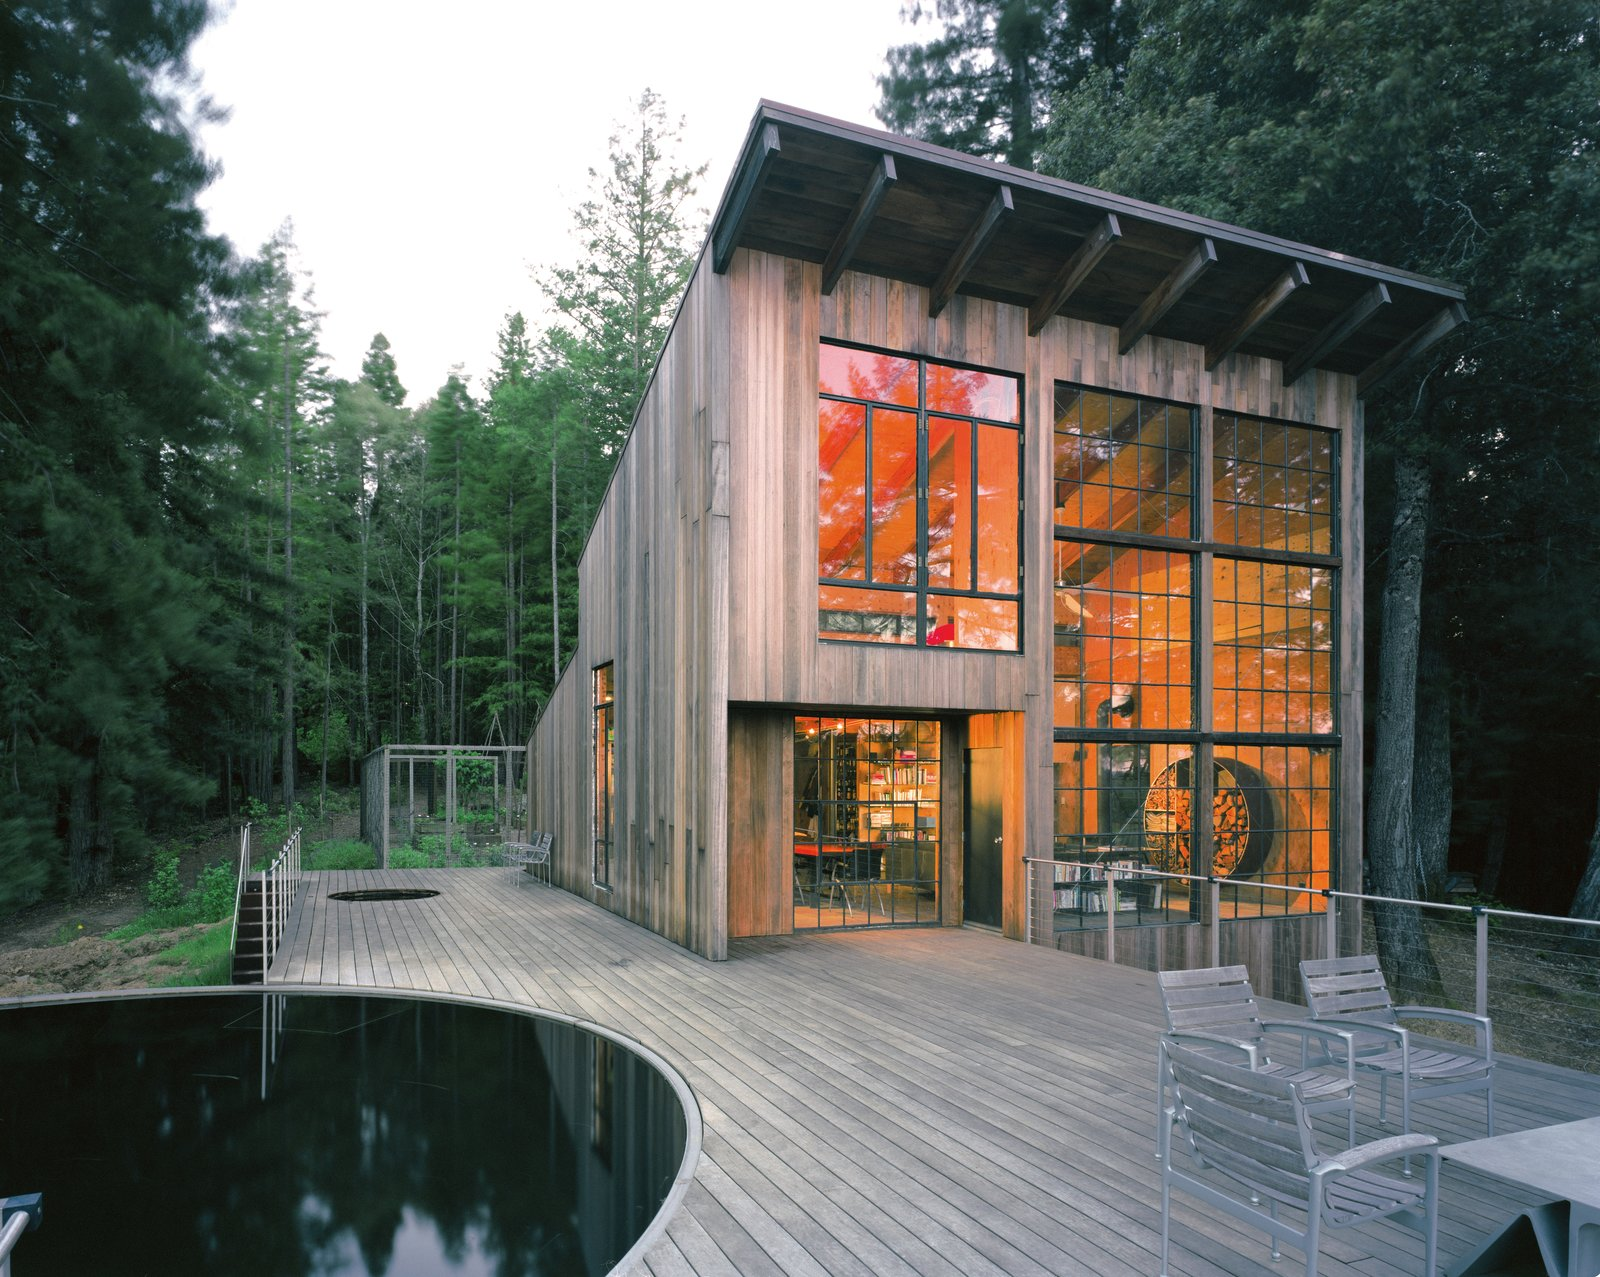 San Francisco firm Lundberg Design built this cabin out of reclaimed materials, including the exterior redwood, which has aged into an elegant, ashen gray. In a past life, the pool acted as a water tank for livestock. Tagged: Exterior, House, Cabin Building Type, Wood Siding Material, and Shed RoofLine.  Photo 75 of 101 in 101 Best Modern Cabins from Beauty and Brains: Building Sustainably With Redwood